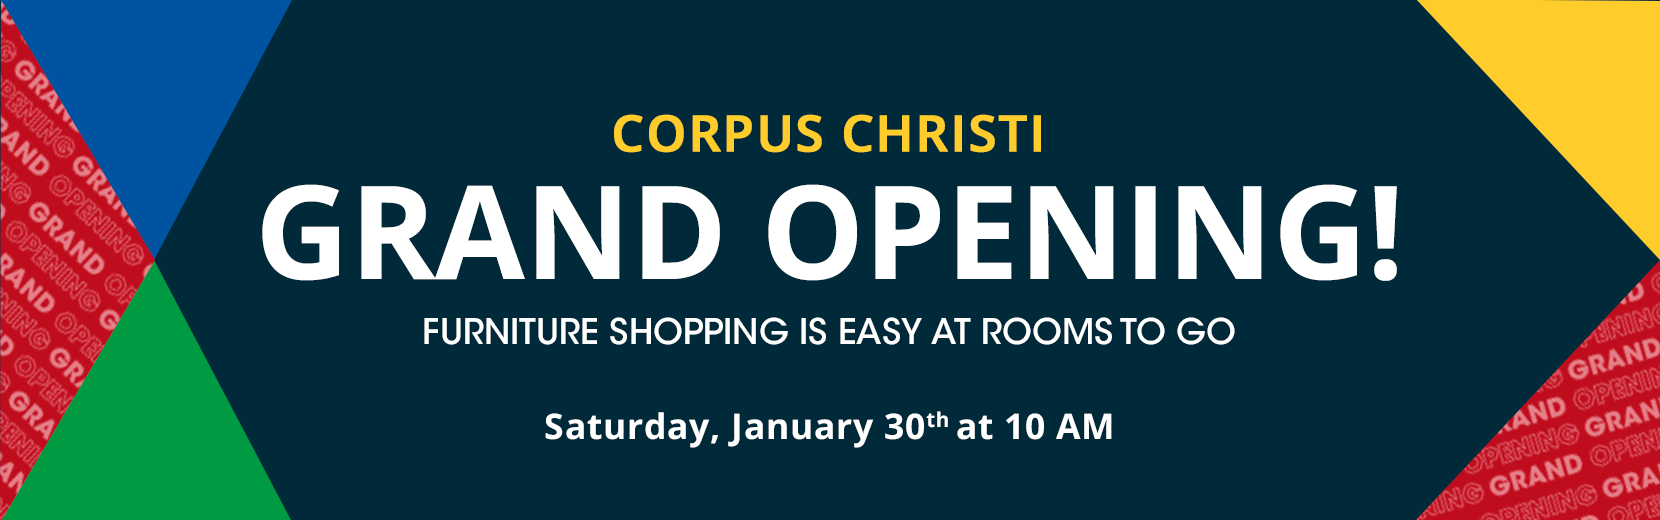 dale mabry grand opening! furniture shopping is easy at rooms to go. saturday, january 30th at 10 am